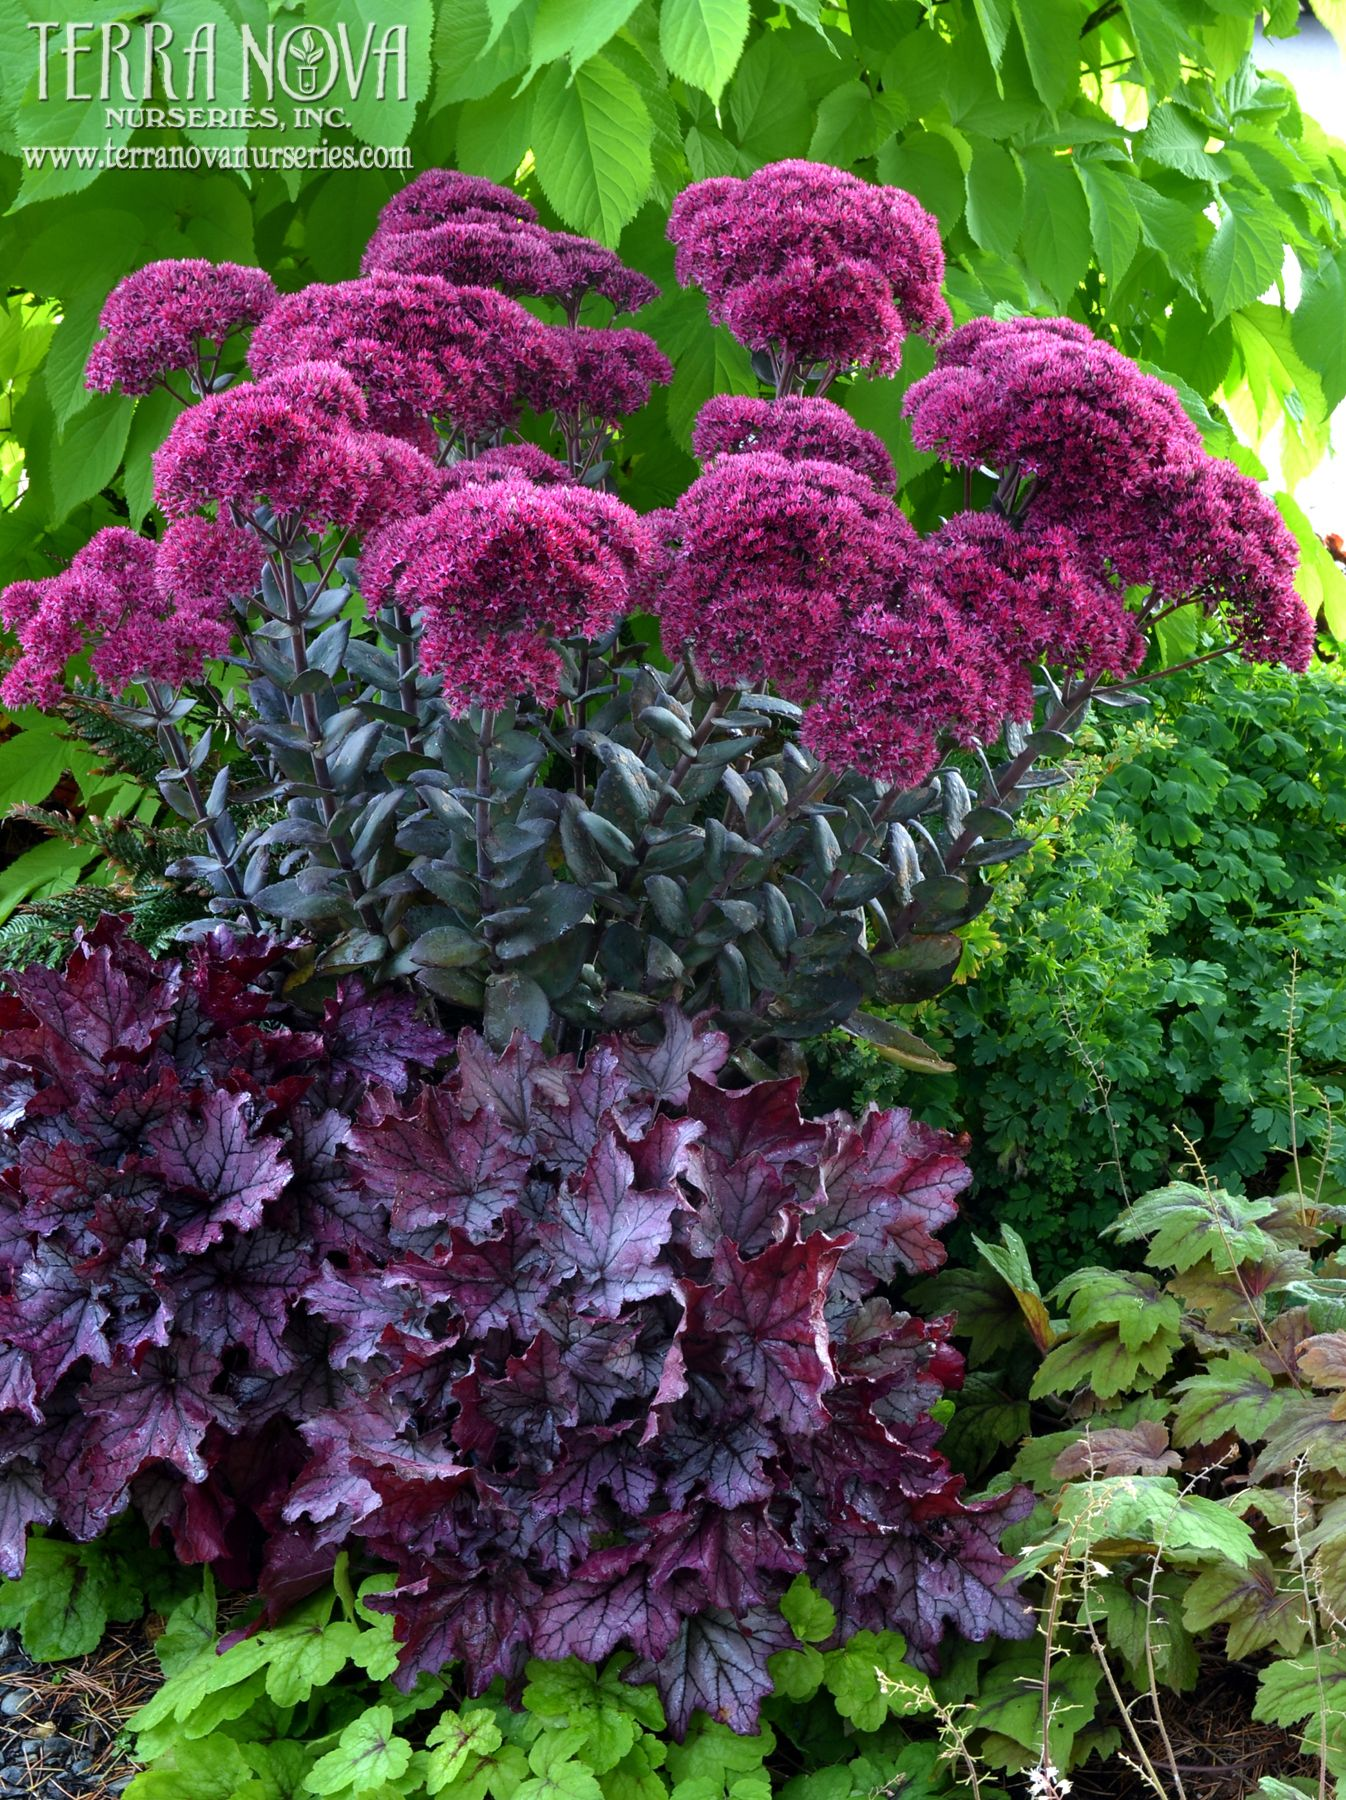 Sedum thunderhead huge deep rose flower heads very stout handsome grey green foliage is the perfect foil for the dramatic long lasting flowers one of the most majestic sedums terra nova has introduced altavistaventures Images